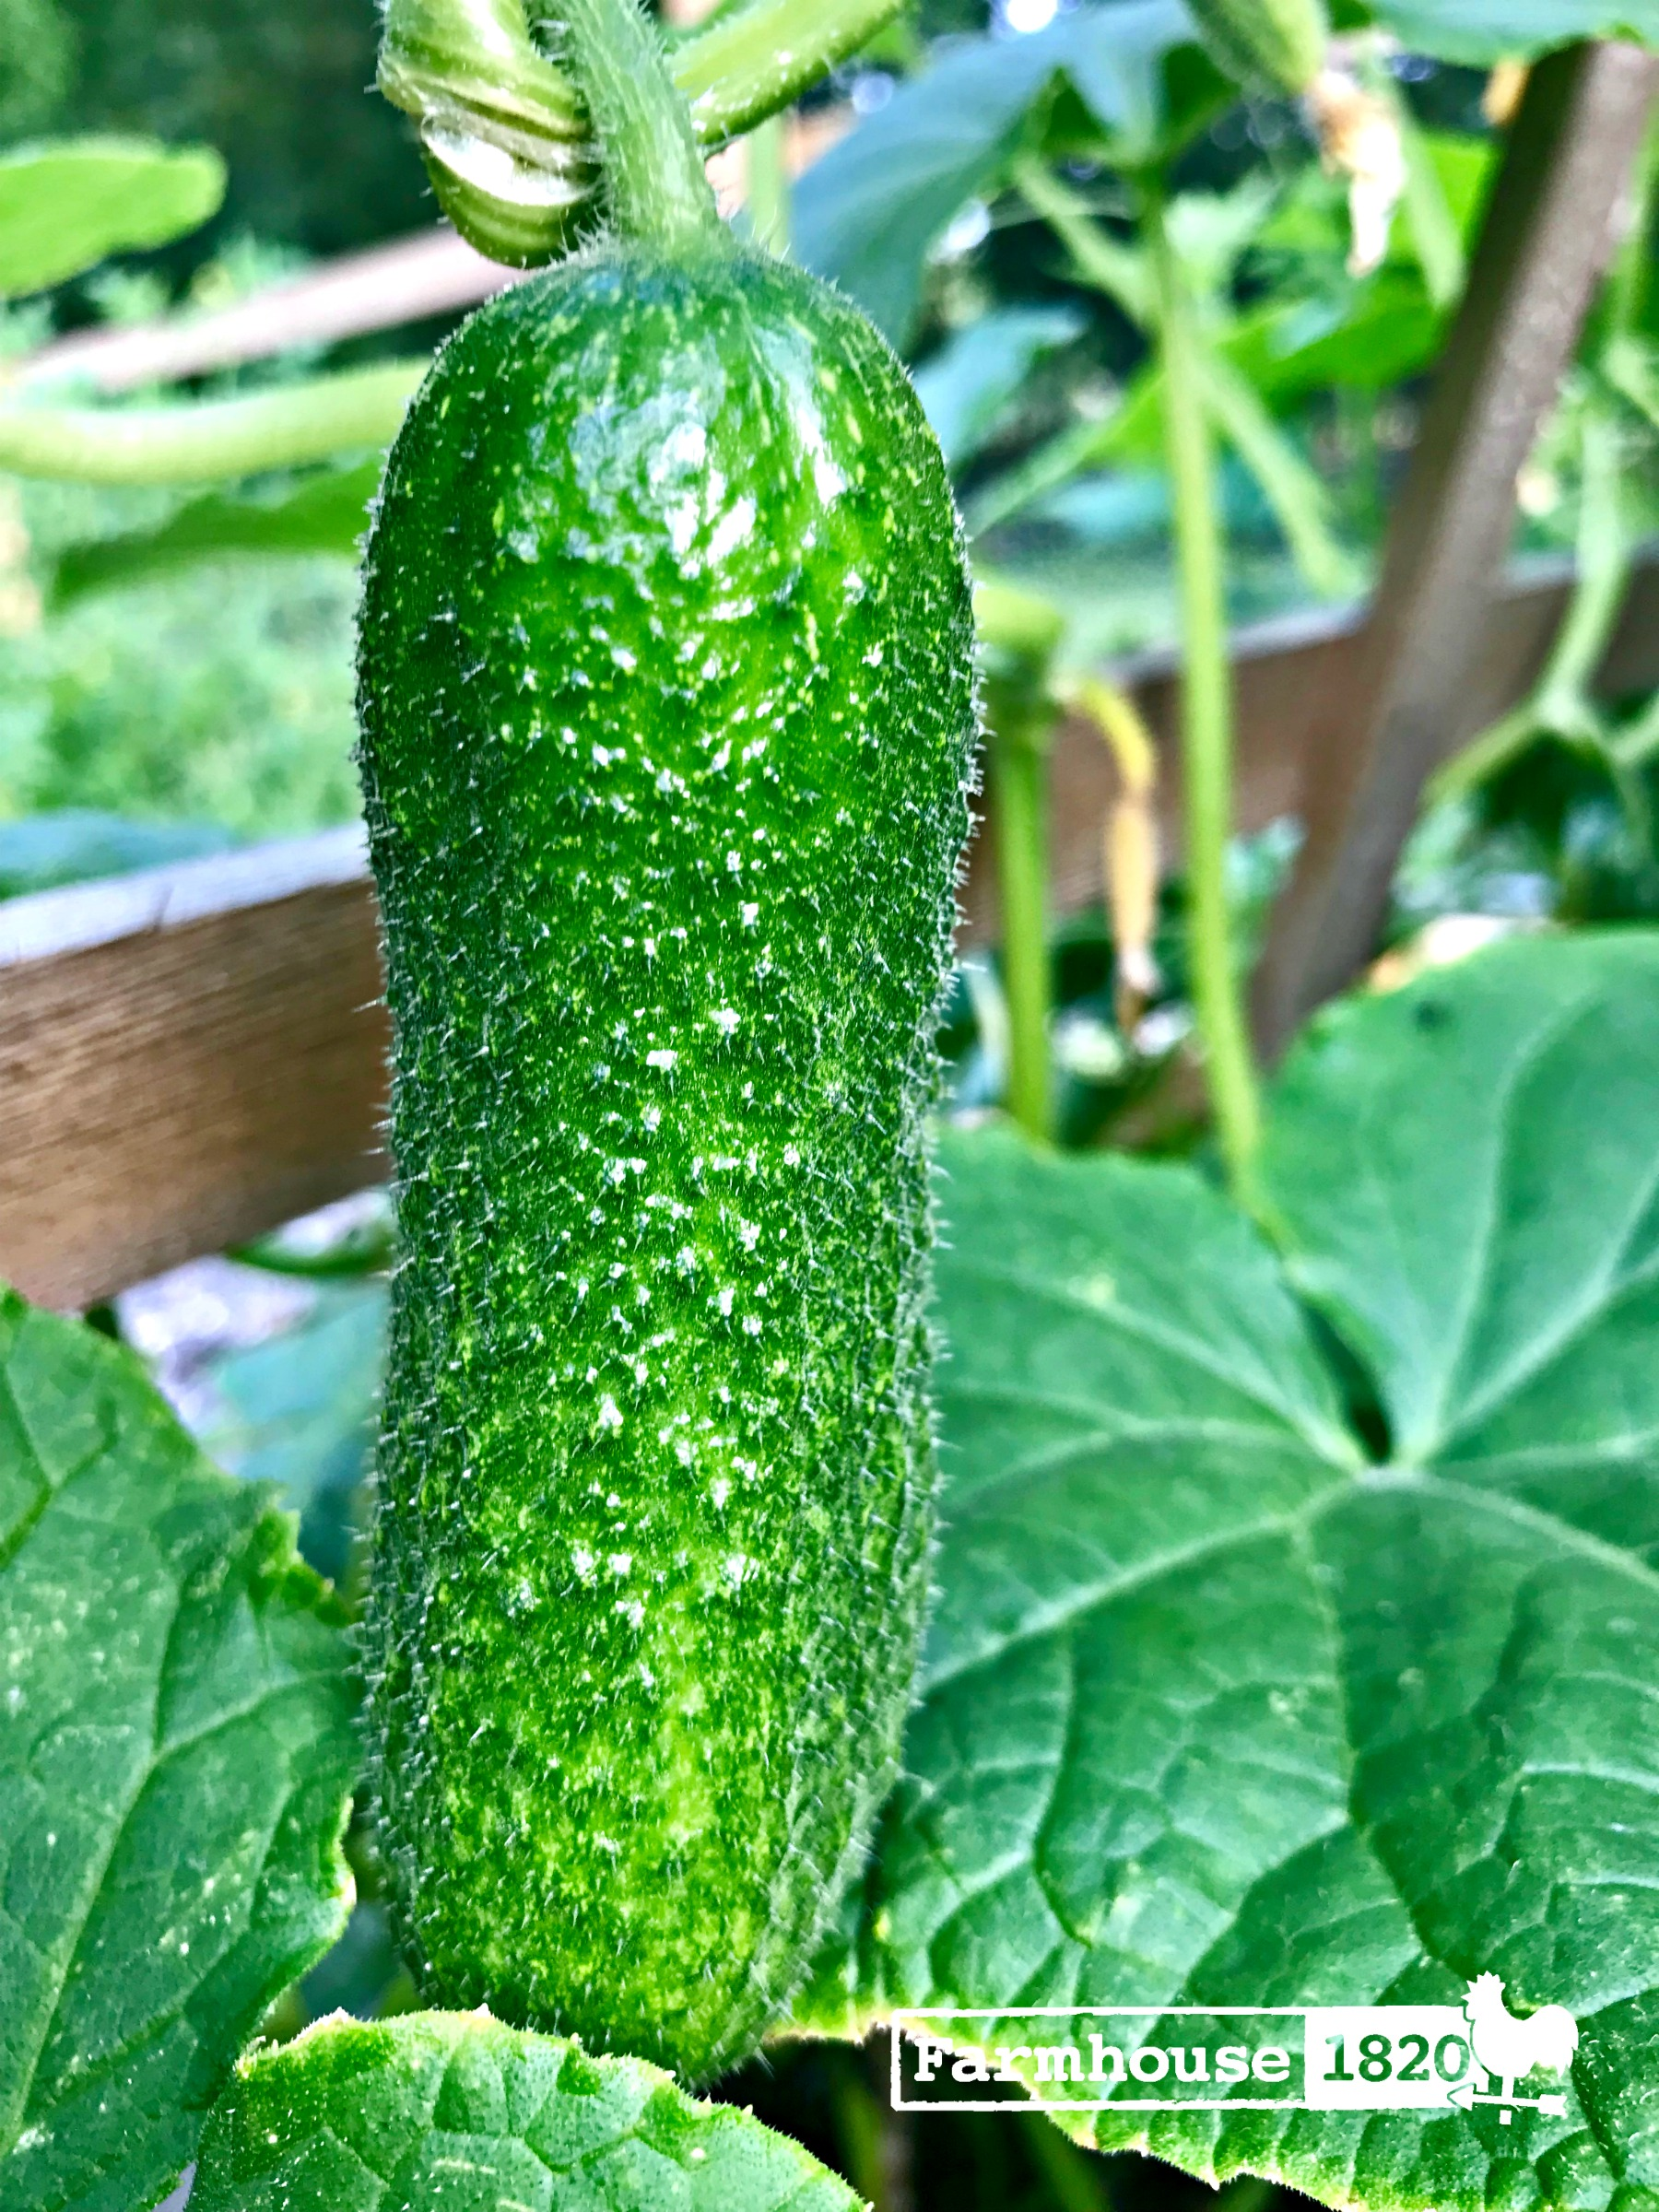 garden 2018 - cucumber on the vine